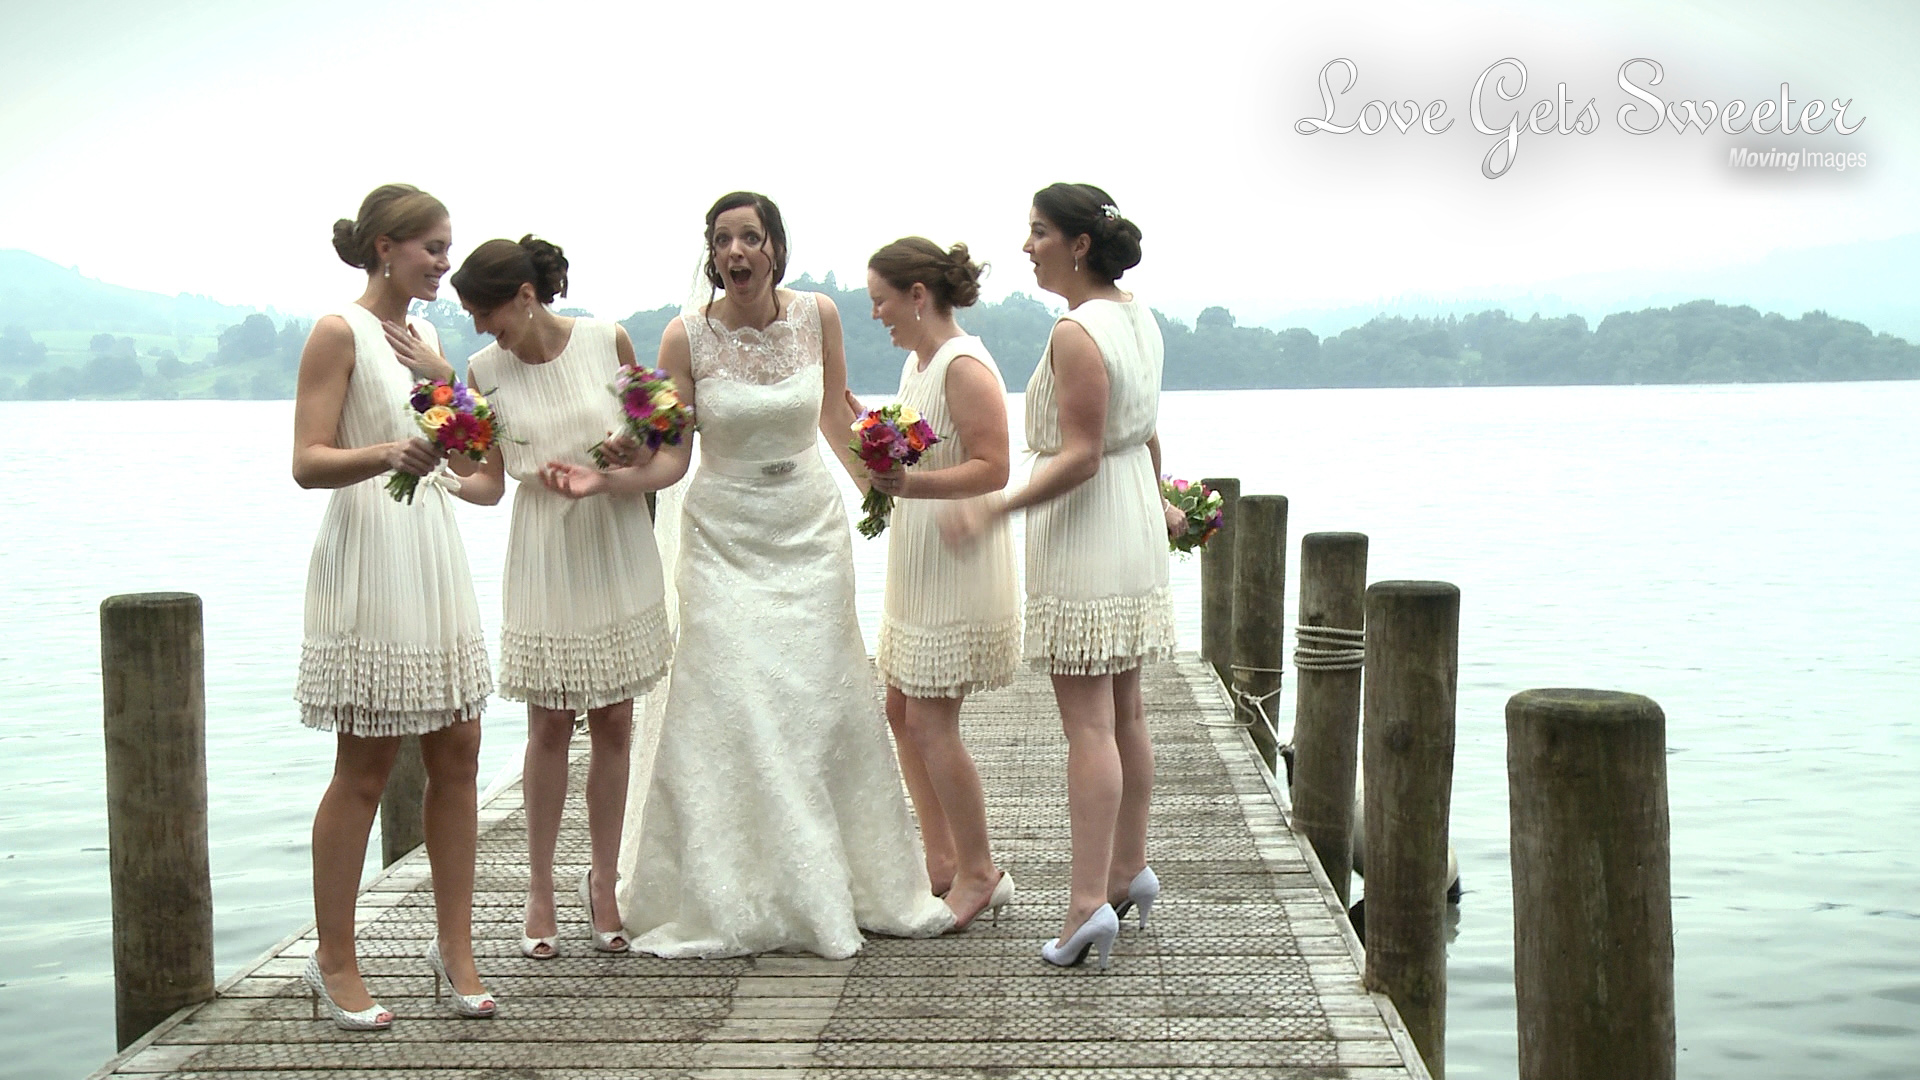 wedding video still of A bride looking shocked with her bridemaids nearly fall in standing on a jetty outside The Langdale chase Hotel on Lake Windermere